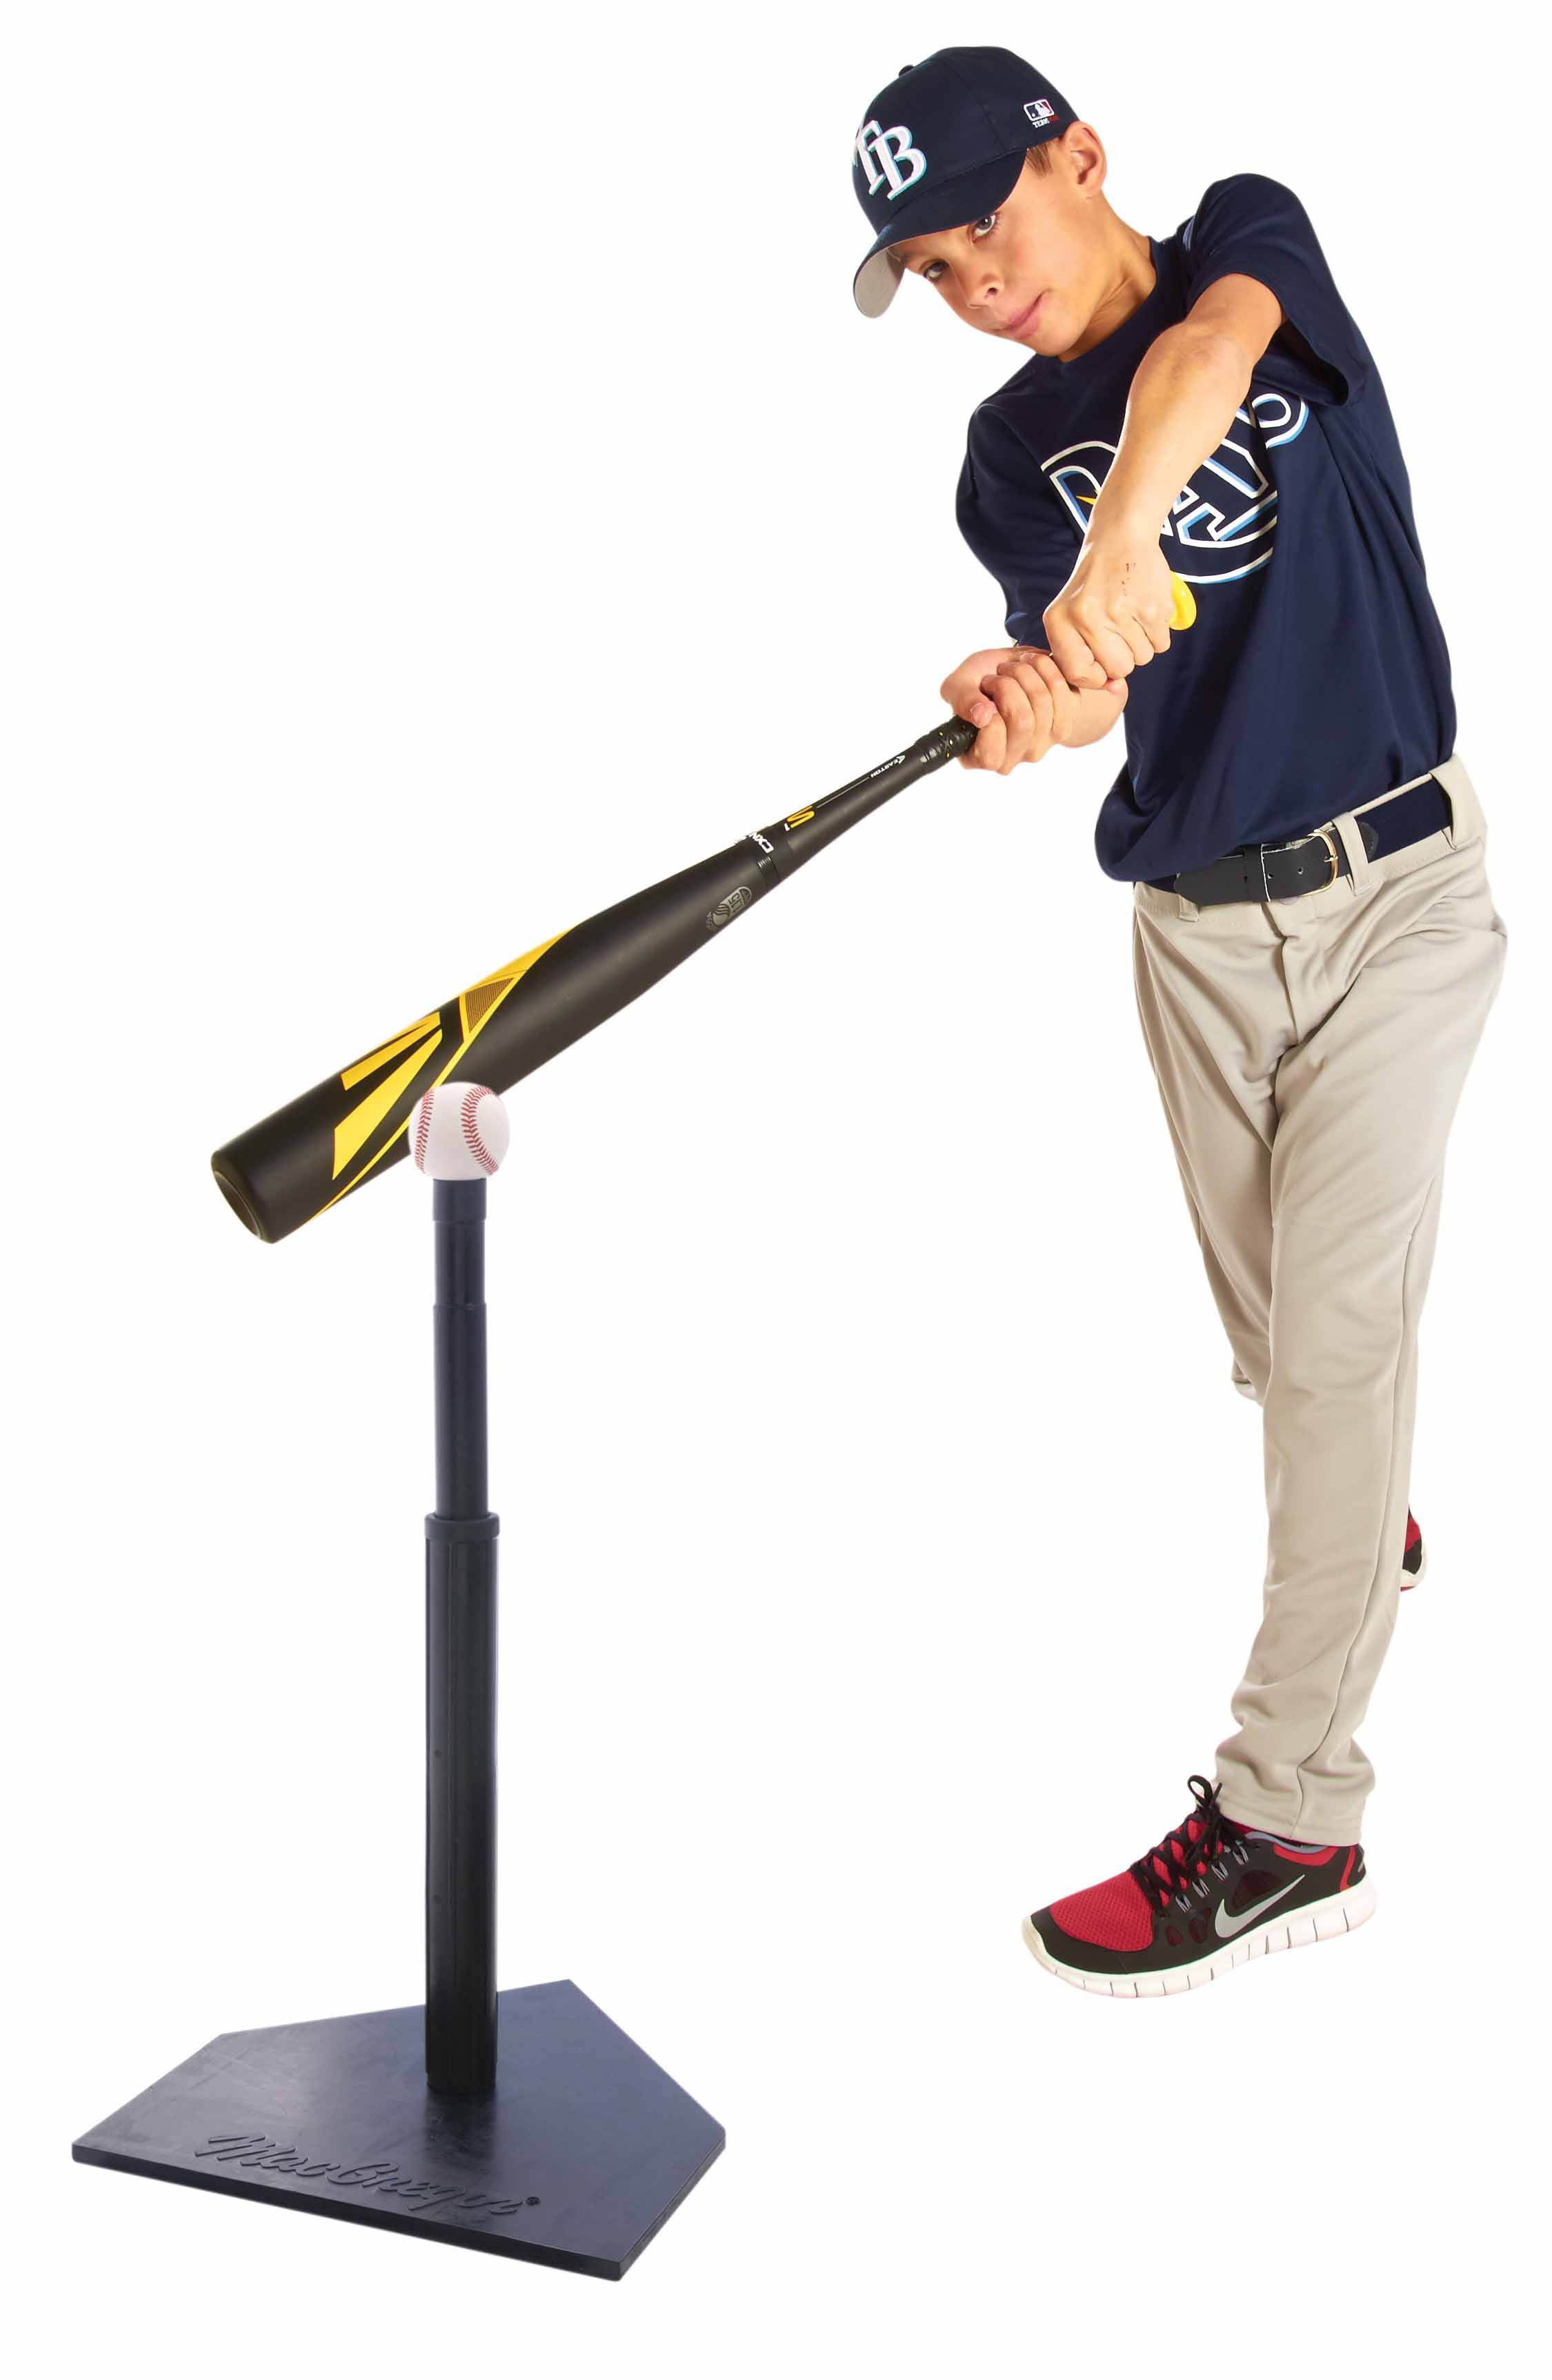 Baseball Gear & Equipment - Walmart com